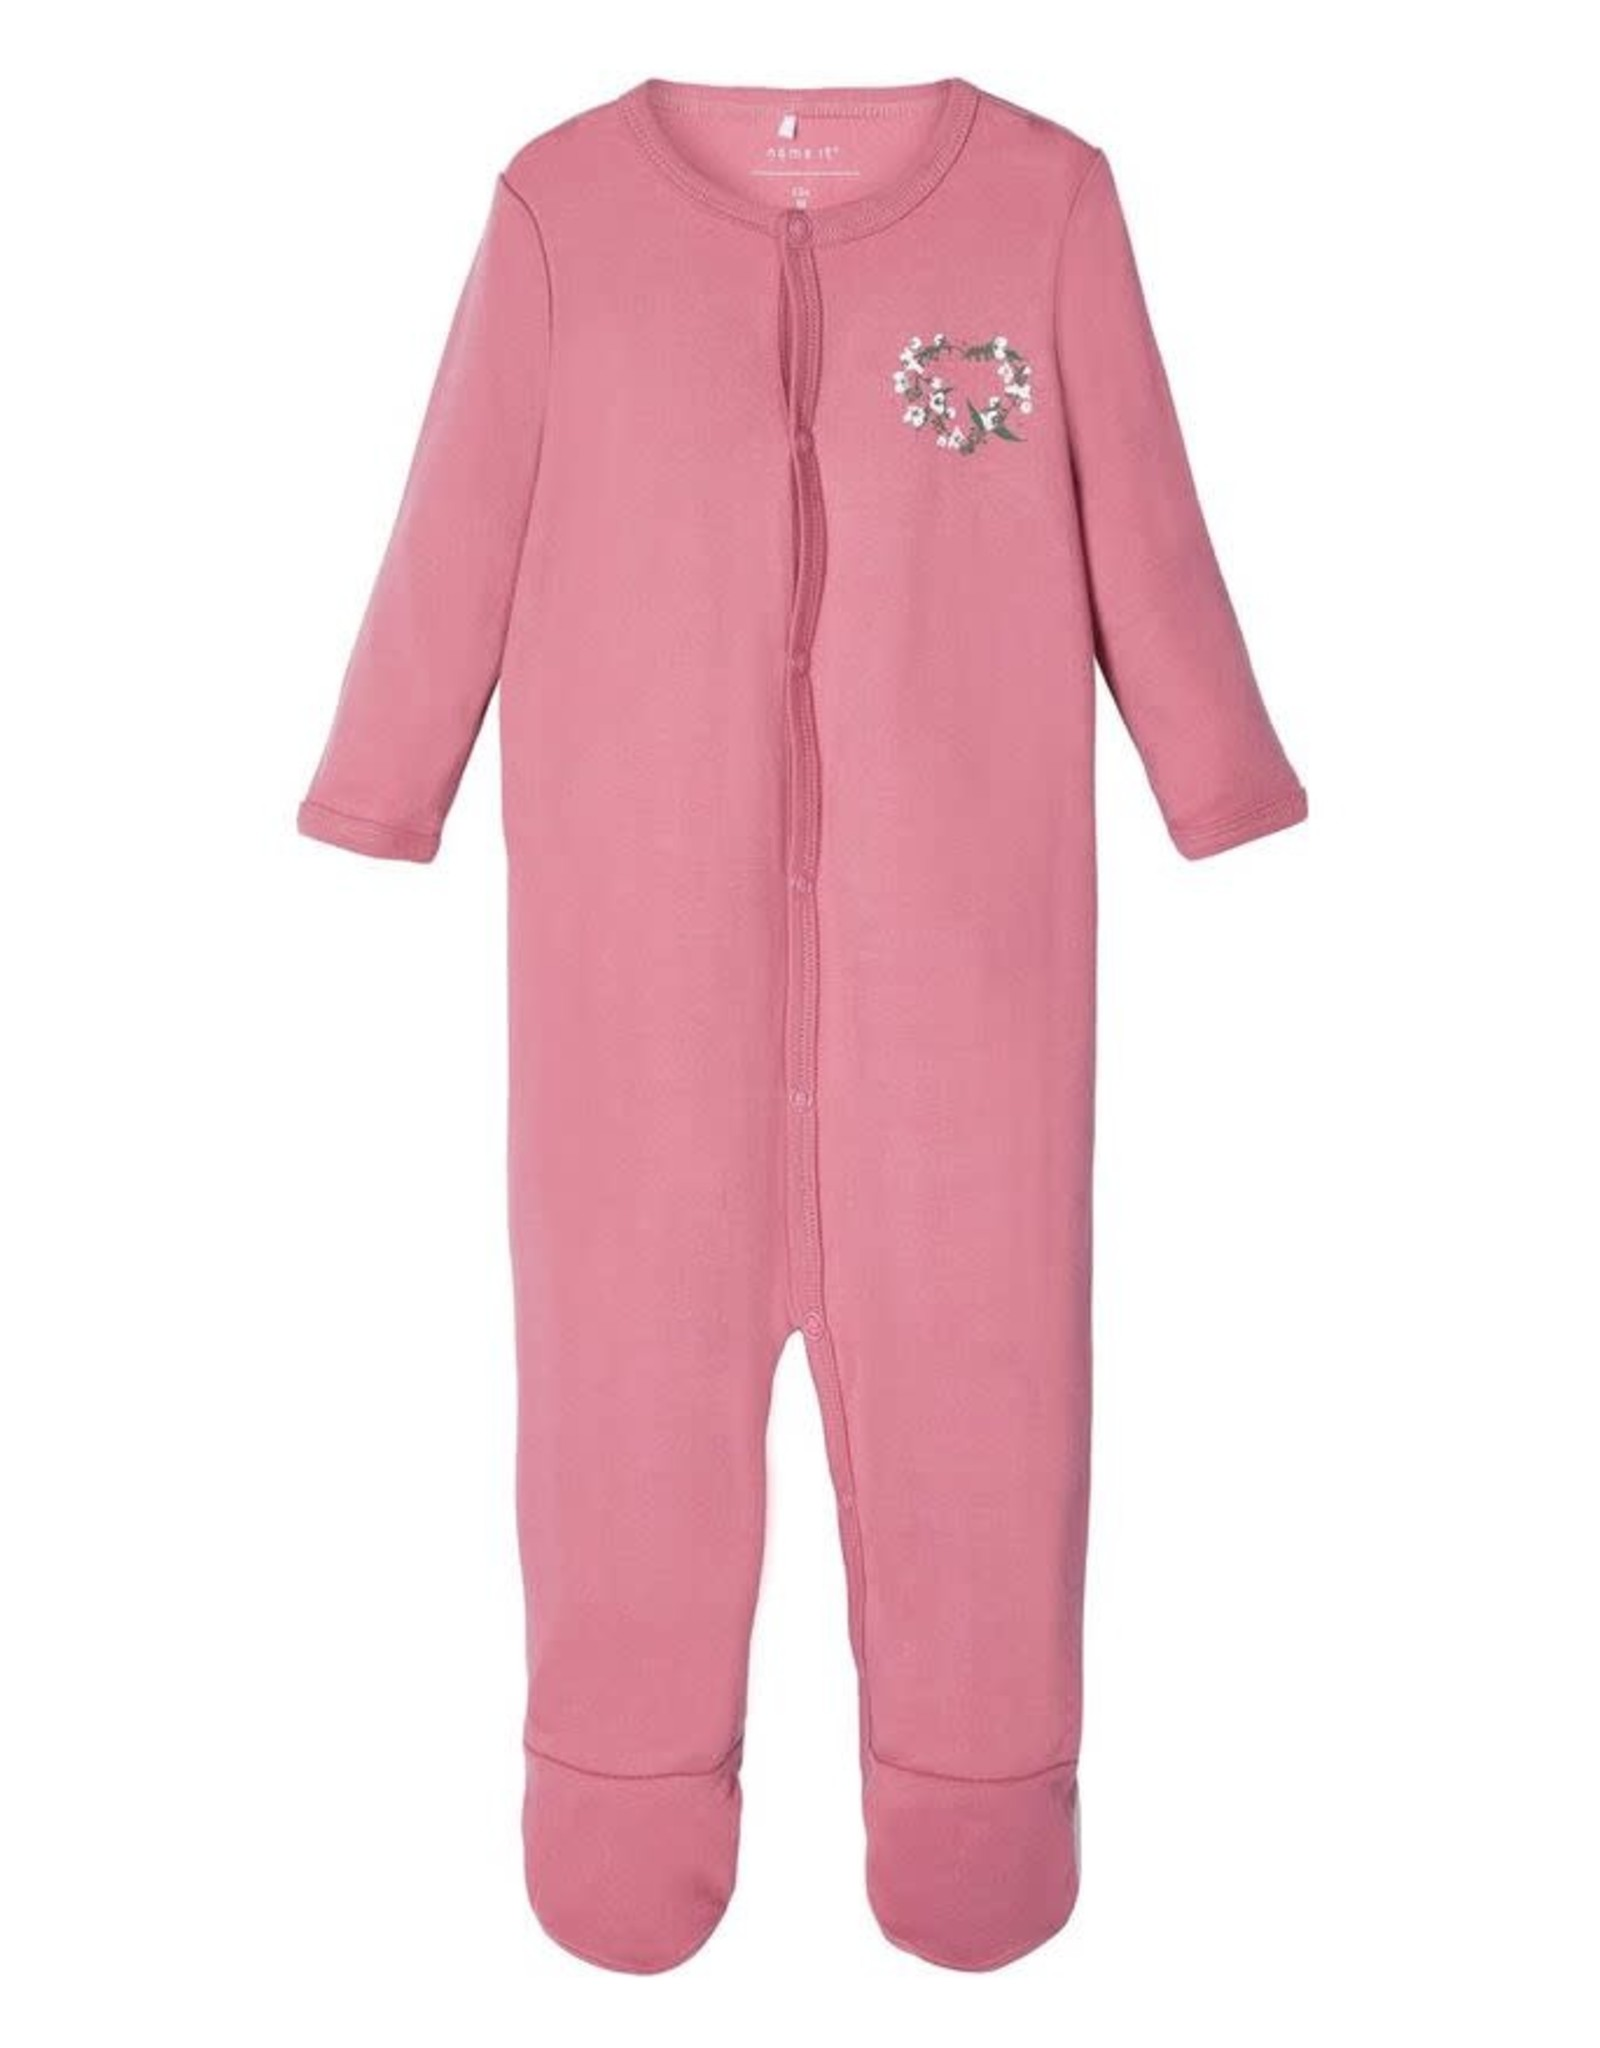 Name It Pyjama roos/ wit bloemetjes